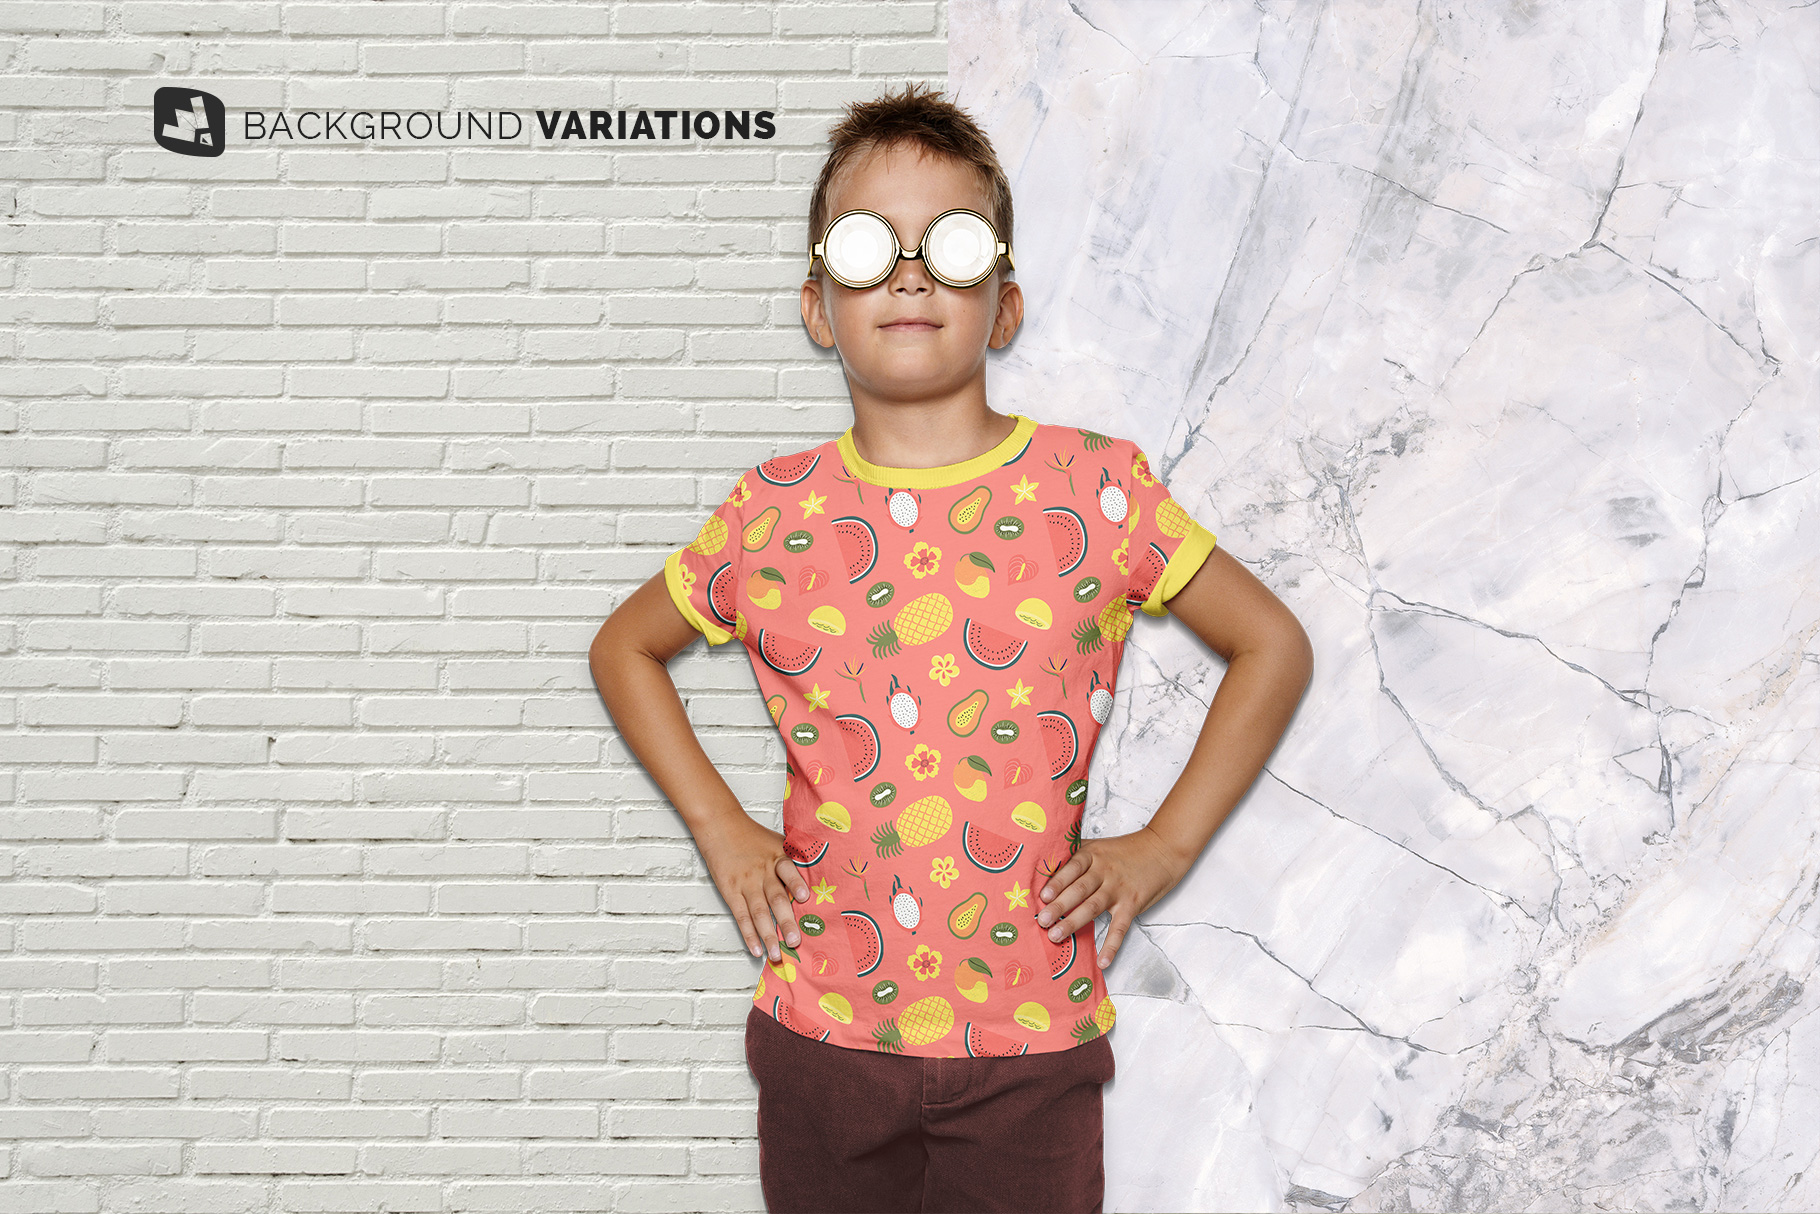 background options of the kid's everyday outfit mockup with sunglasses